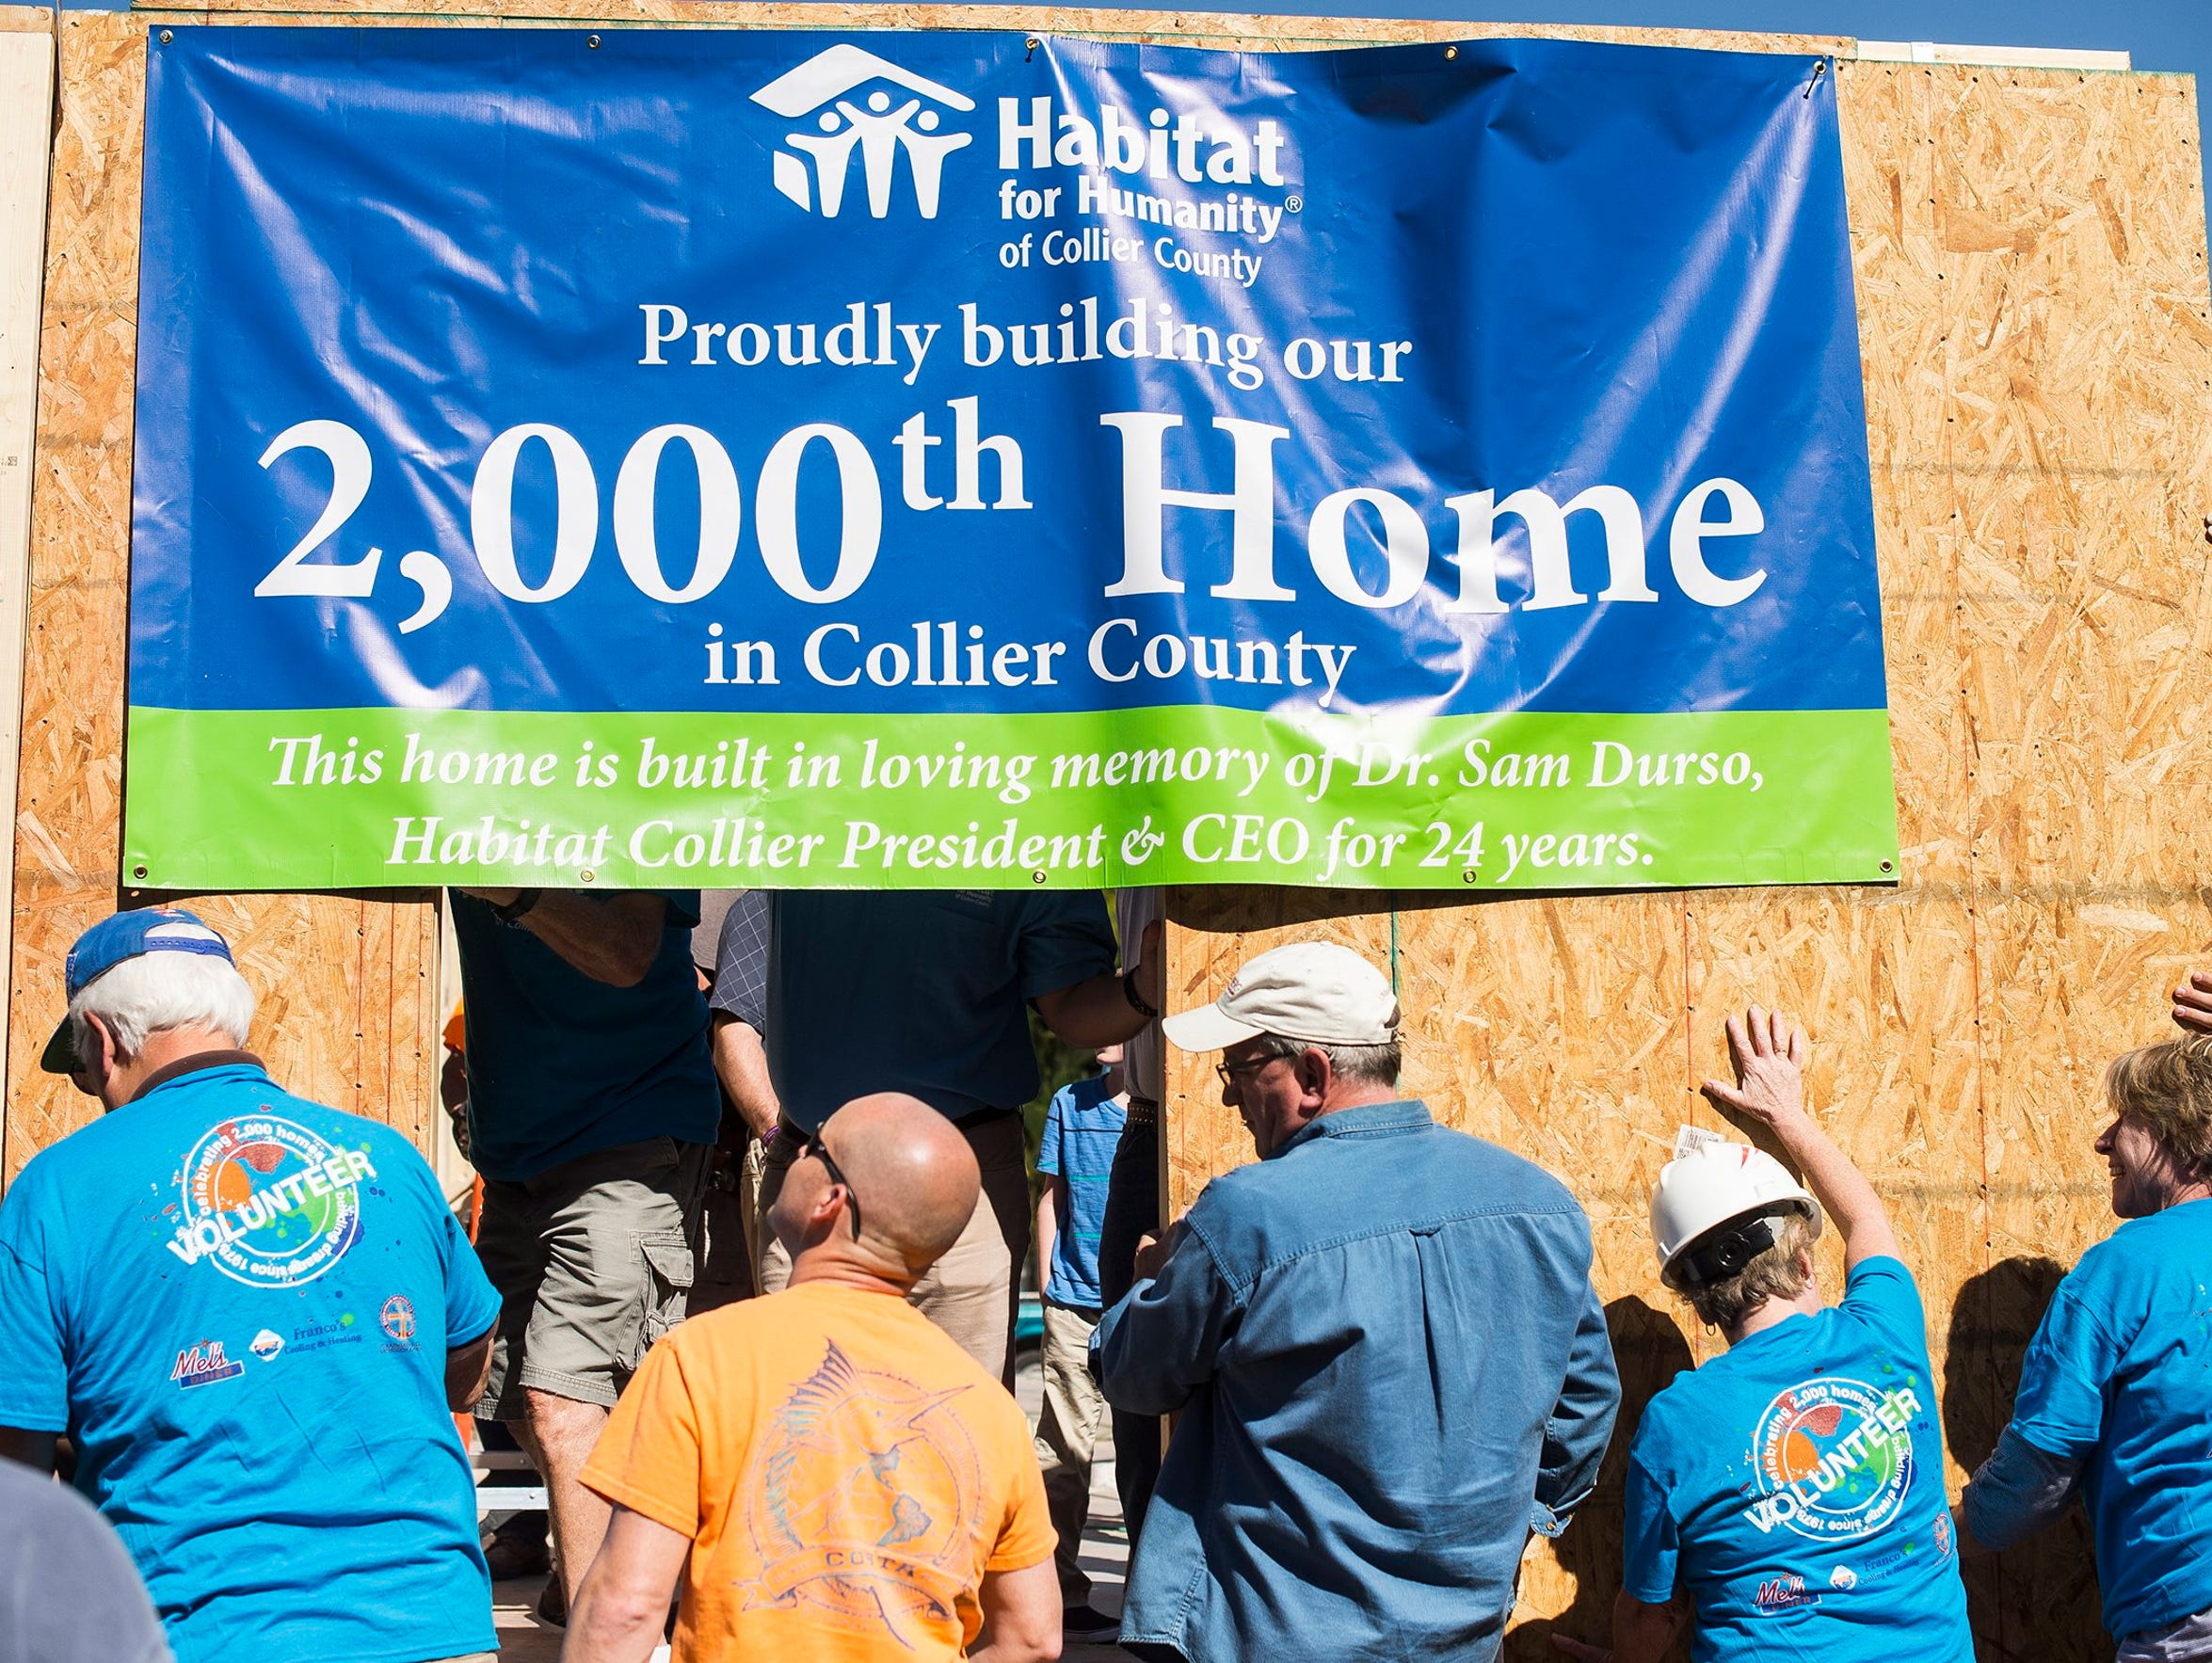 People raise one of the walls for a new home during